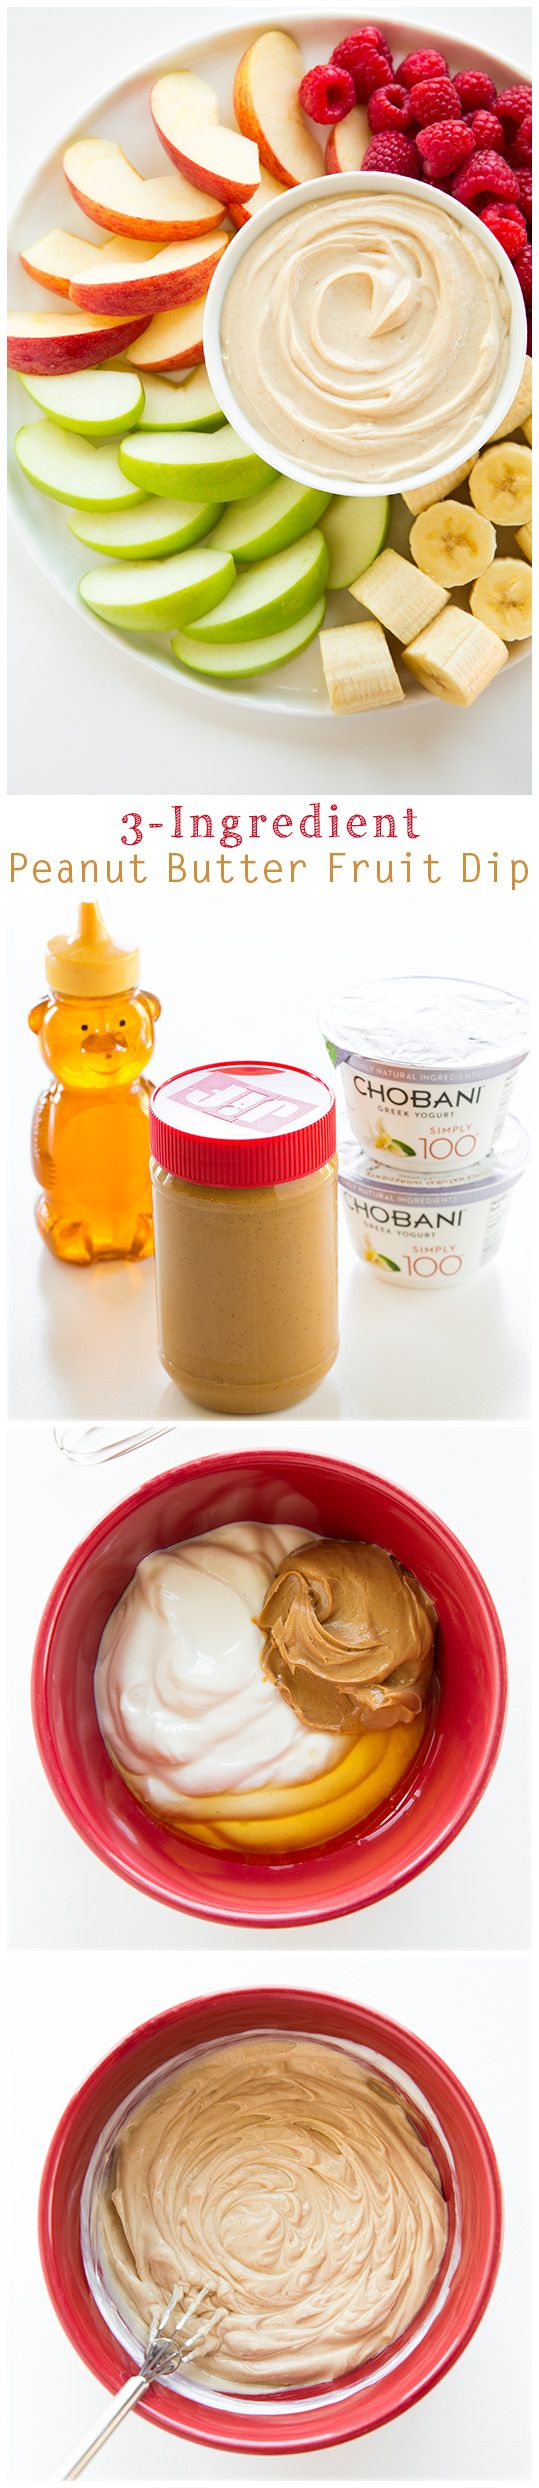 Peanut Butter Fruit Dip - Only THREE ingredients and the easiest dip youll ever make! Healthy and delicious!